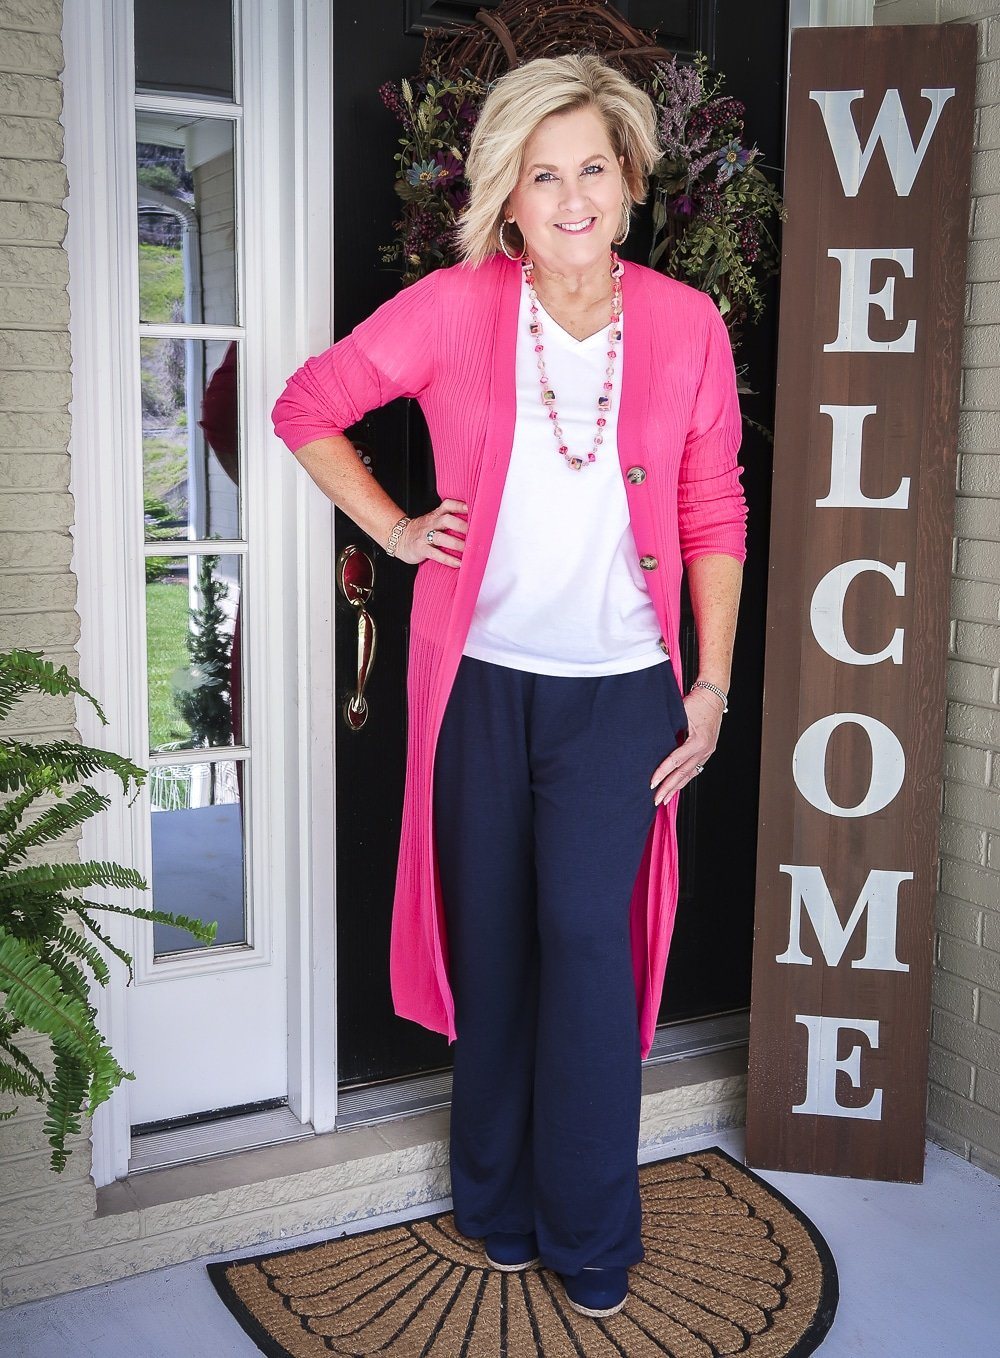 Fashion Blogger 50 Is Not Old wearing a hot pink duster cardigan with a white v-neck t-shirt, vintage jewelry, and navy lounge pants